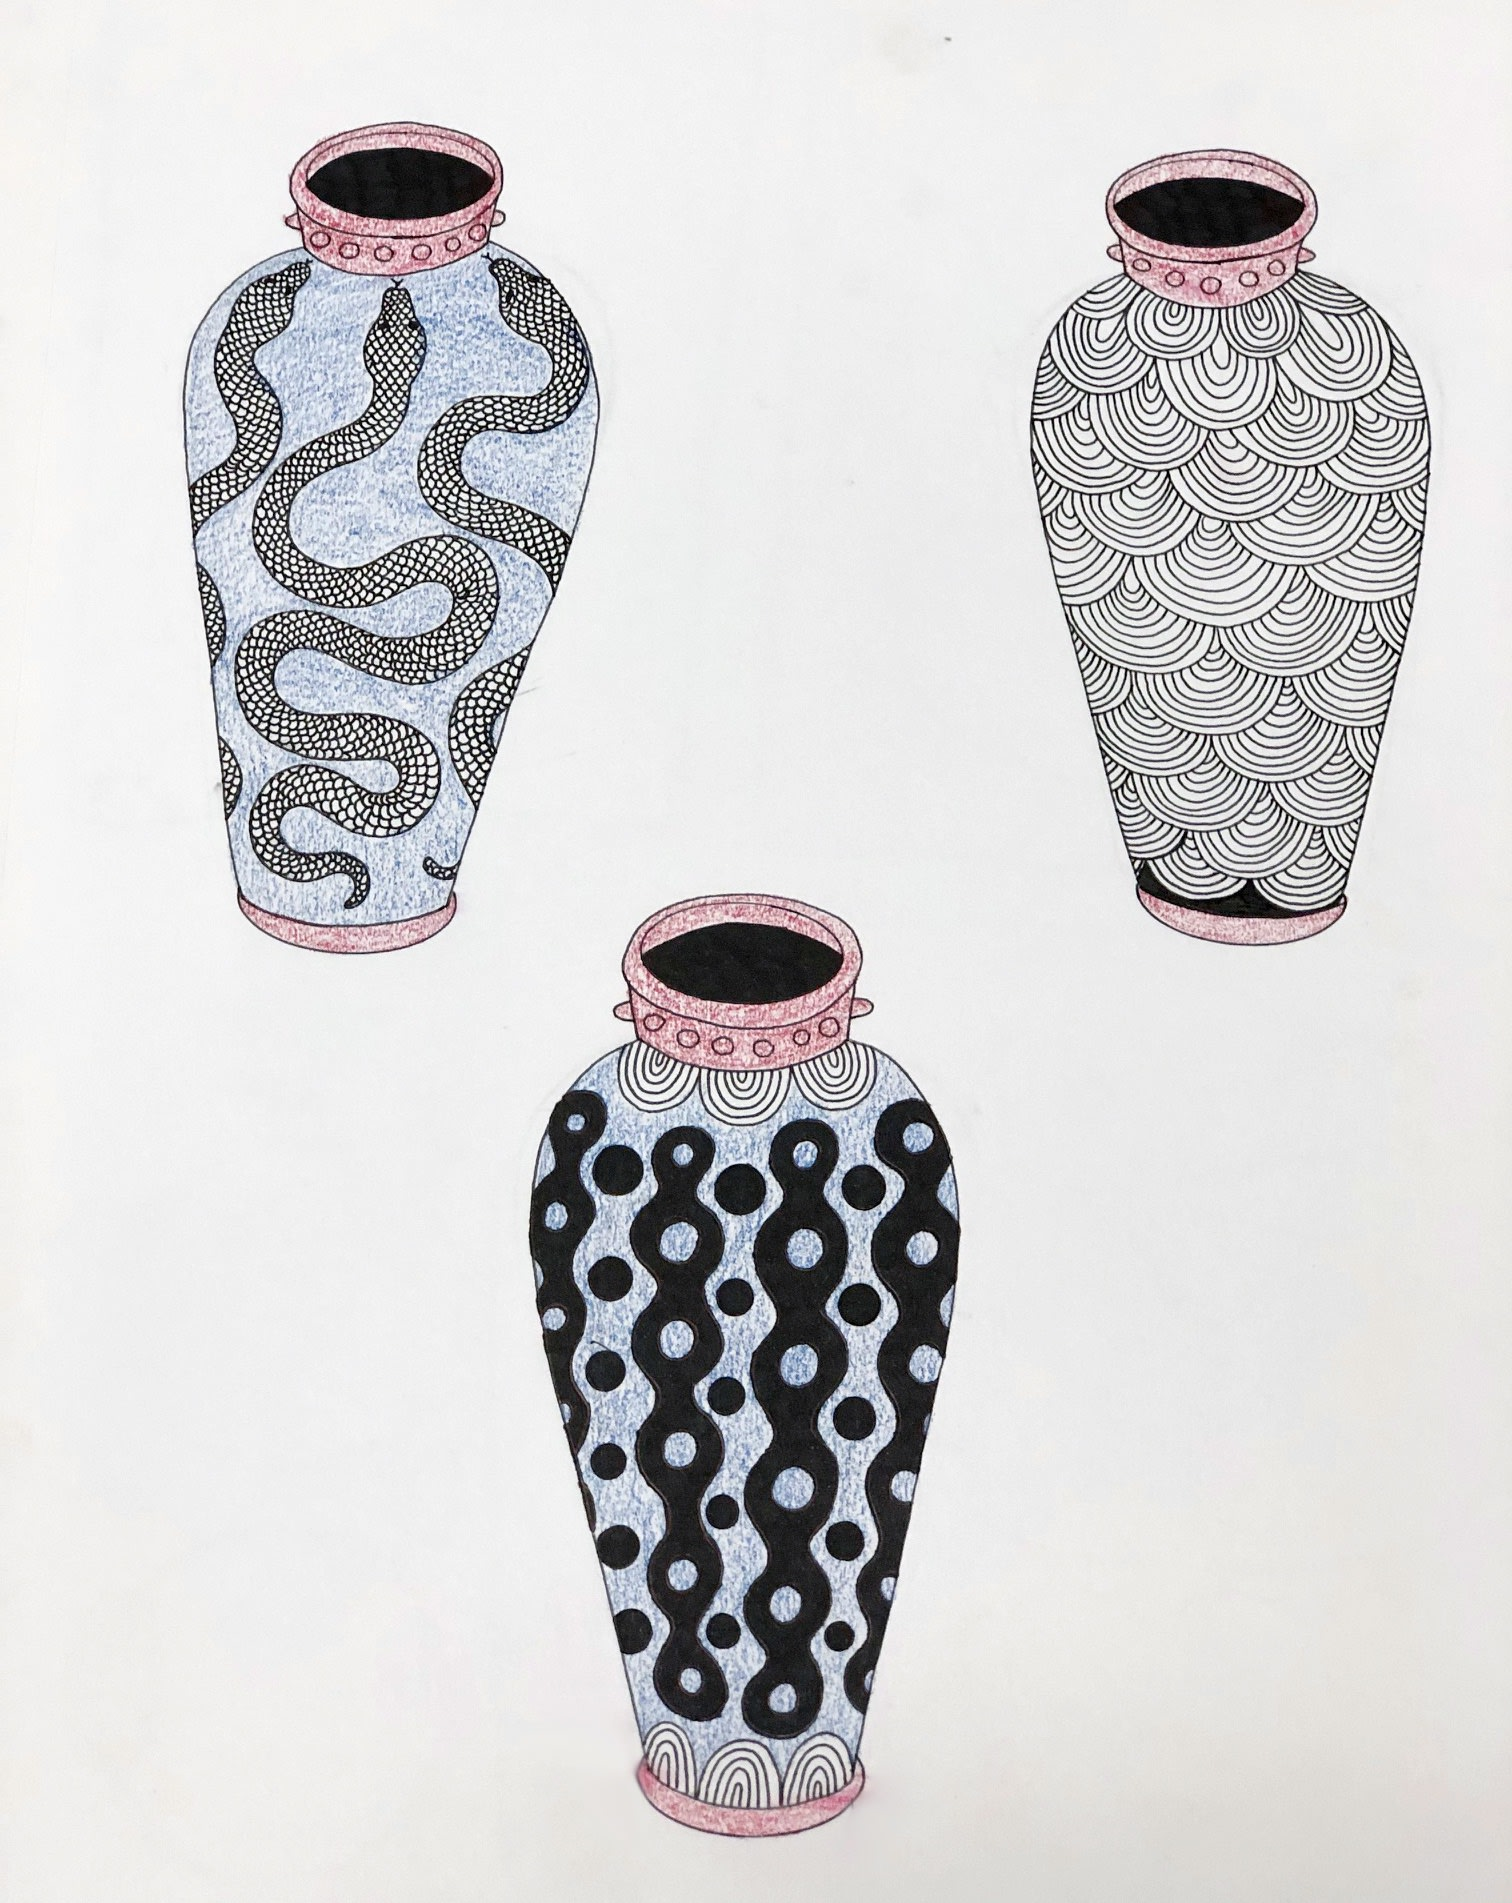 Sketchbook Illustration by Ceramicist Gabriela Gabo Martini